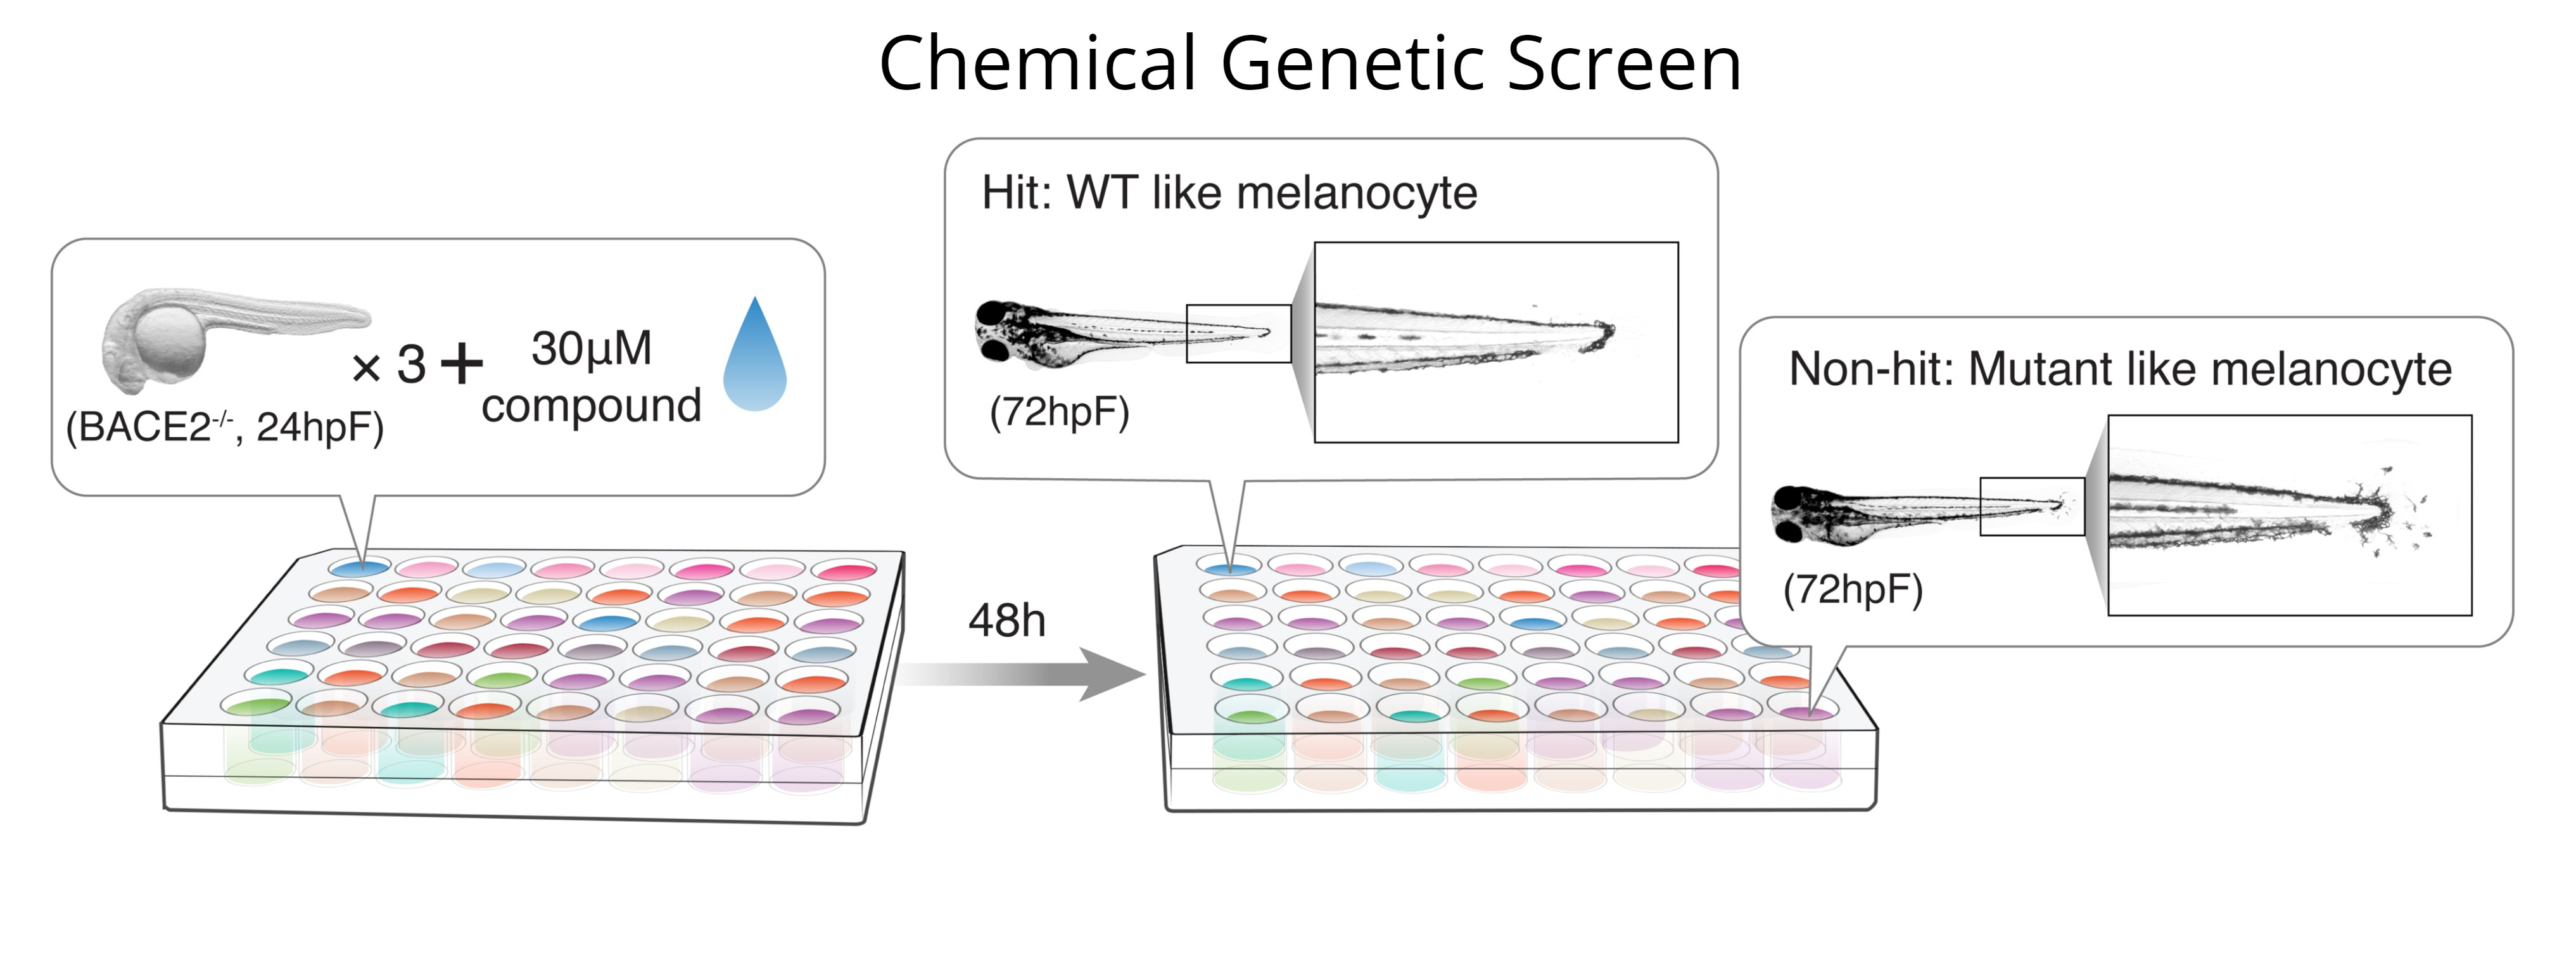 Chemical Genetic Screen